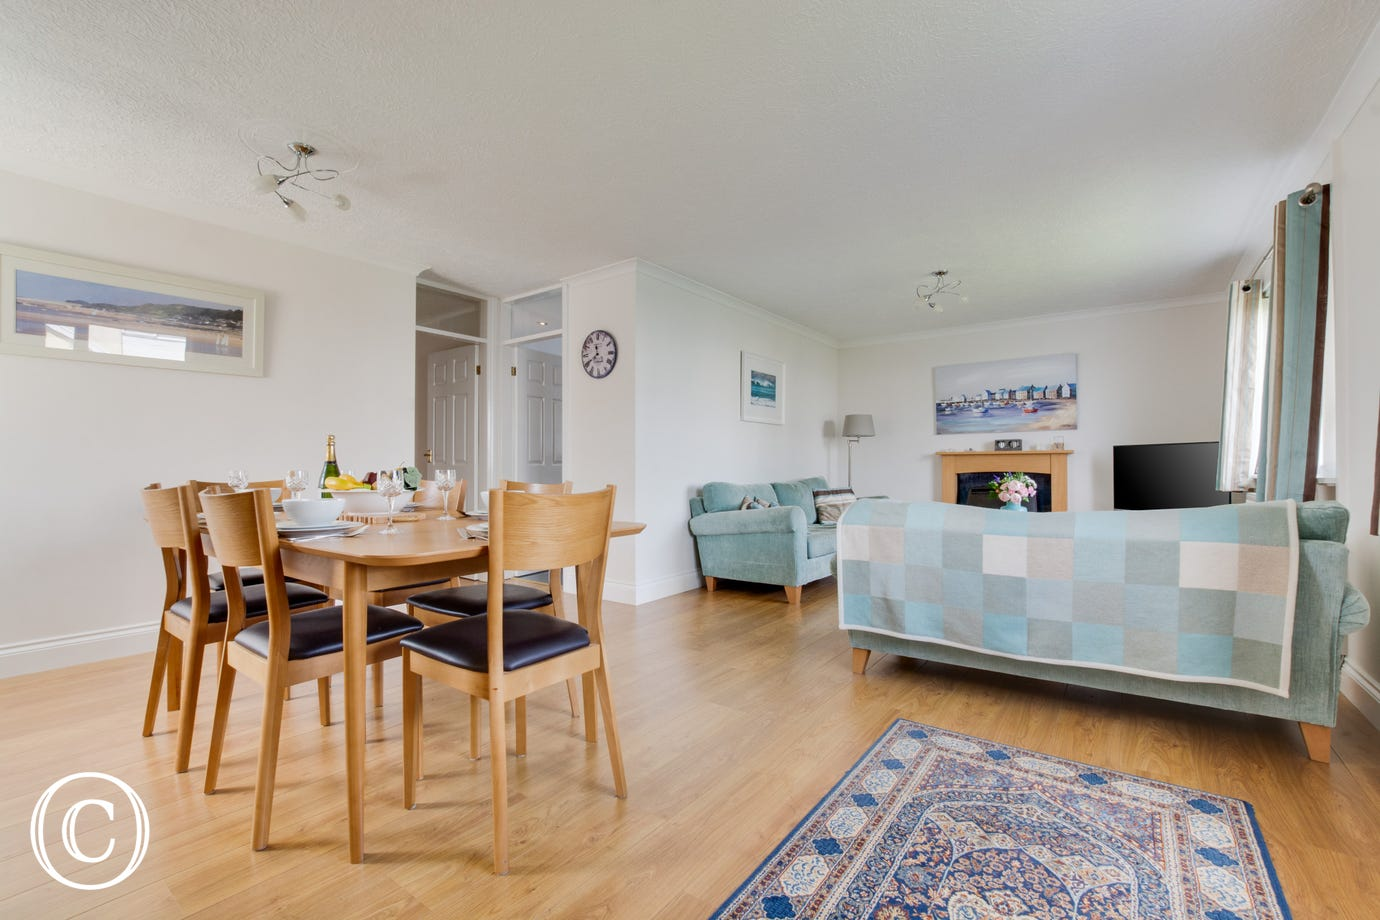 Self catering accommodation in Saundersfoot with open plan living